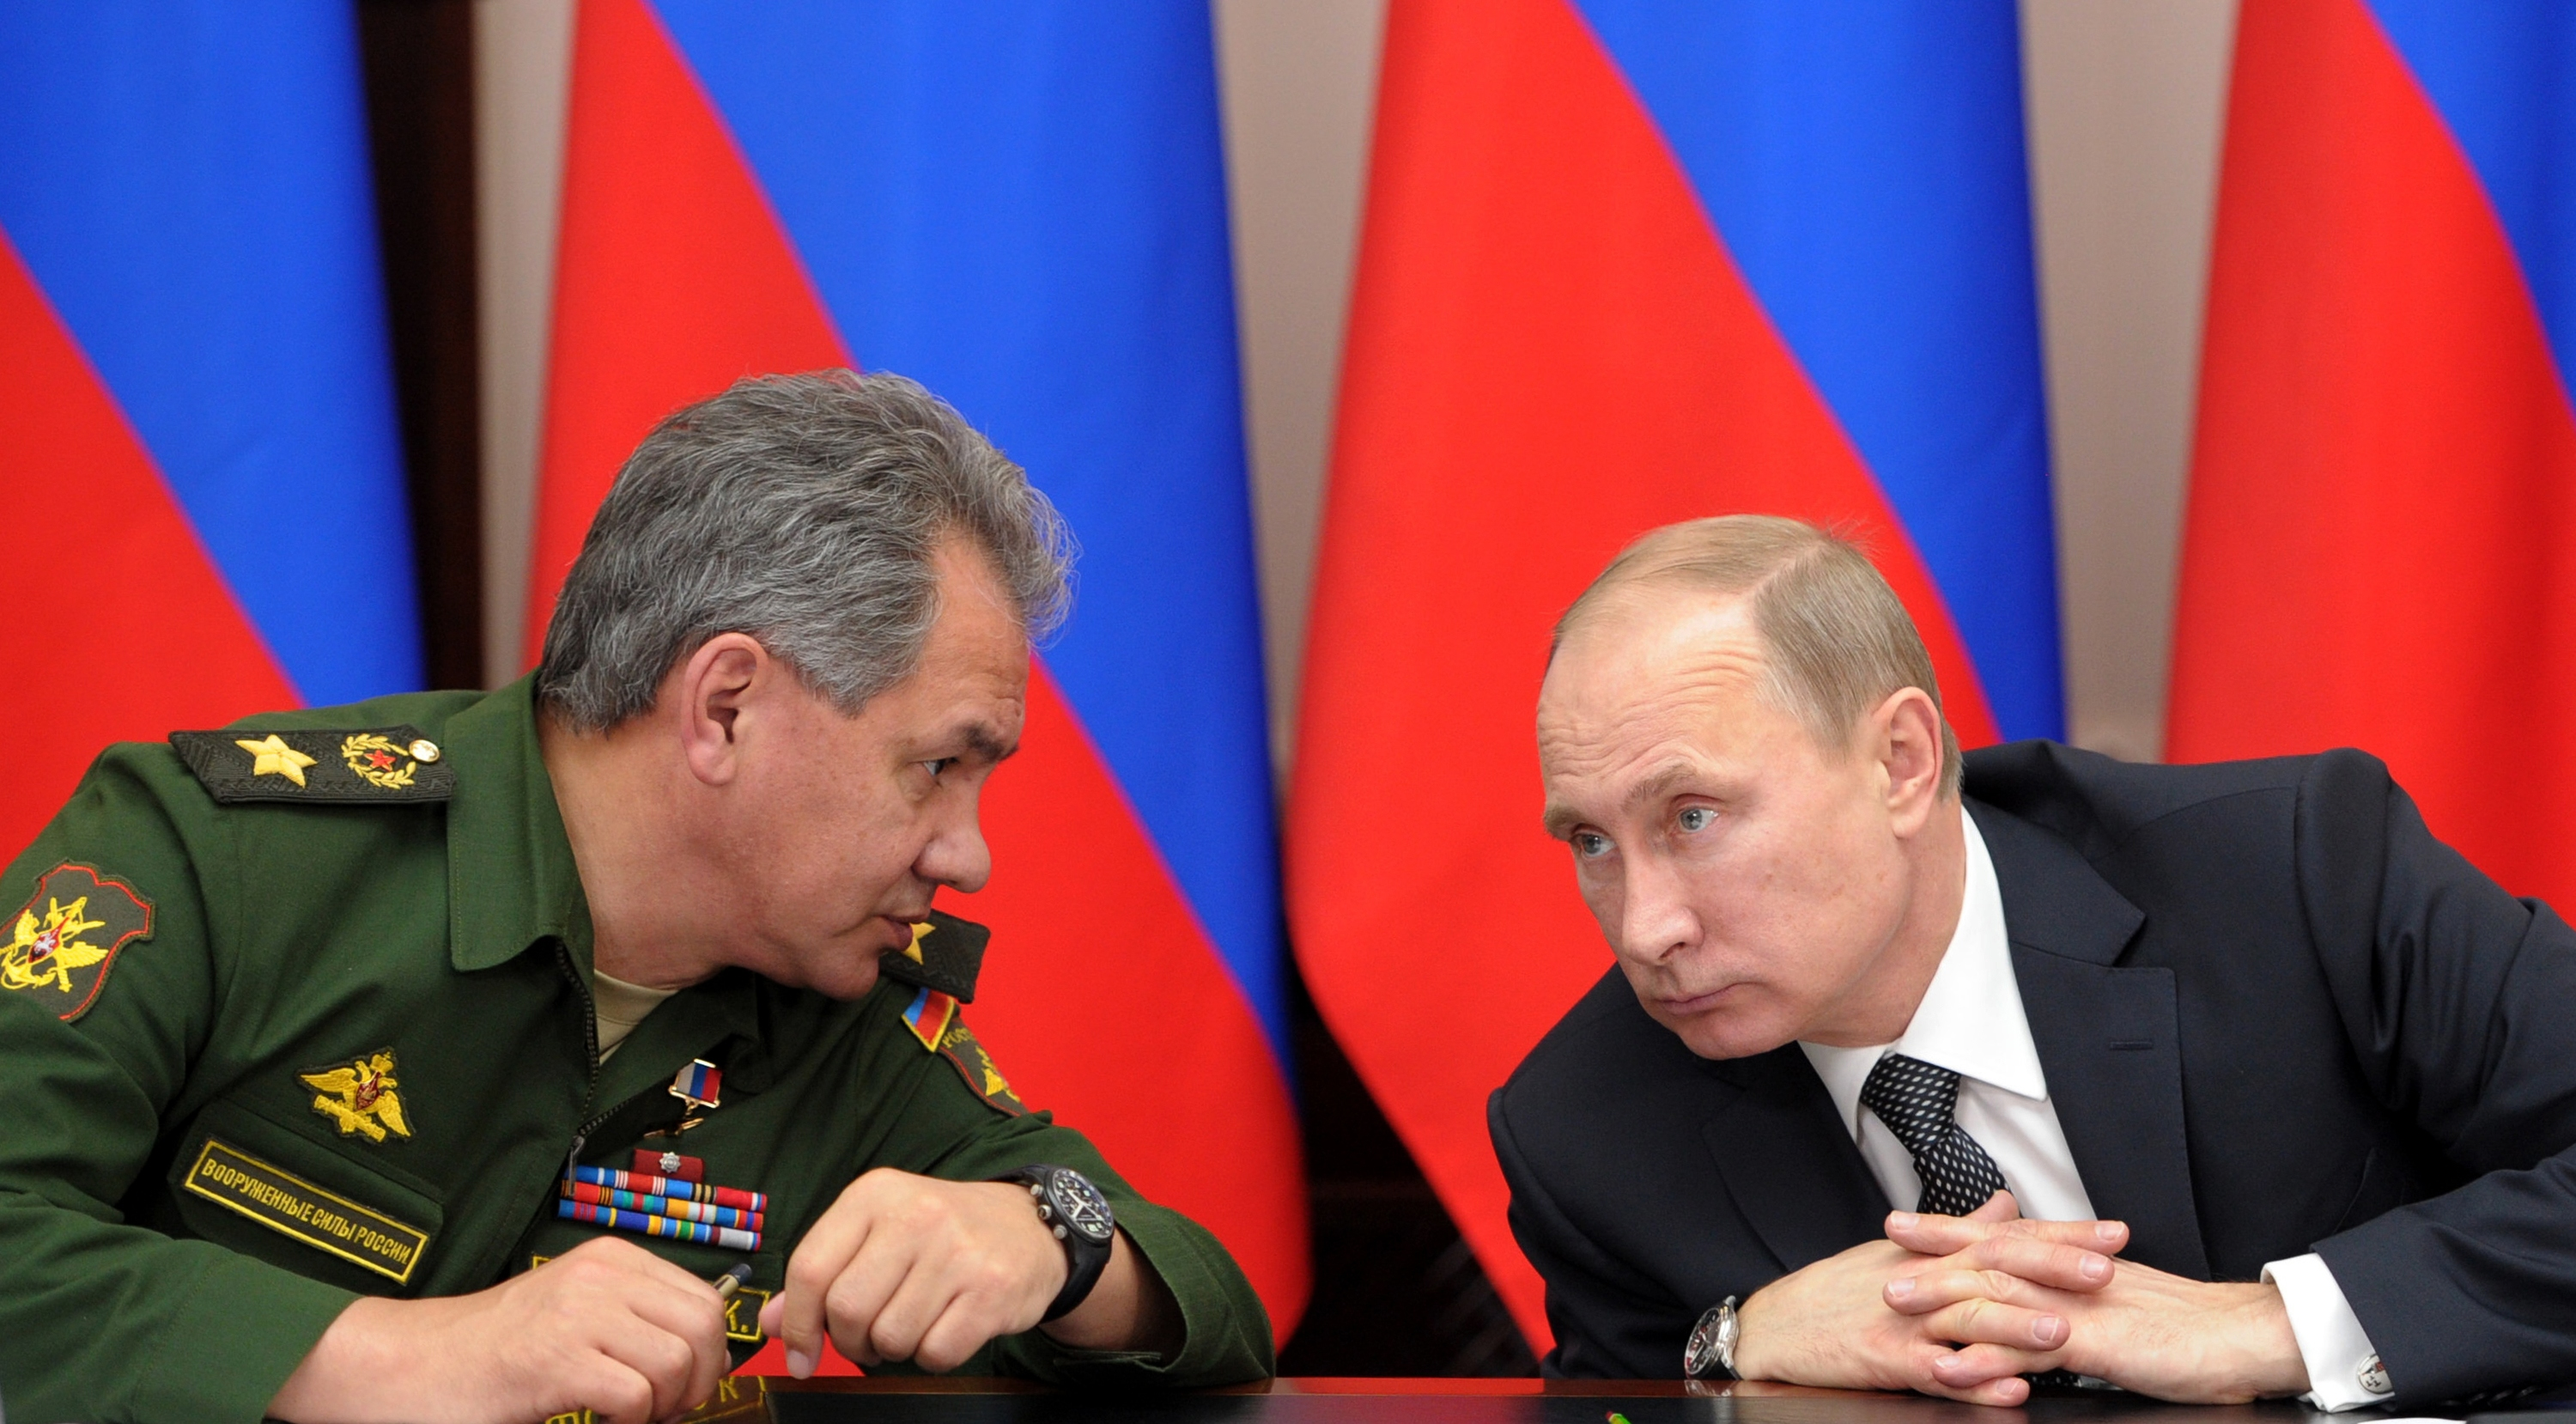 Russian President Vladimir Putin (right) and Defense Minister Sergei Shoigu attend a meeting in Moscow, Russia.